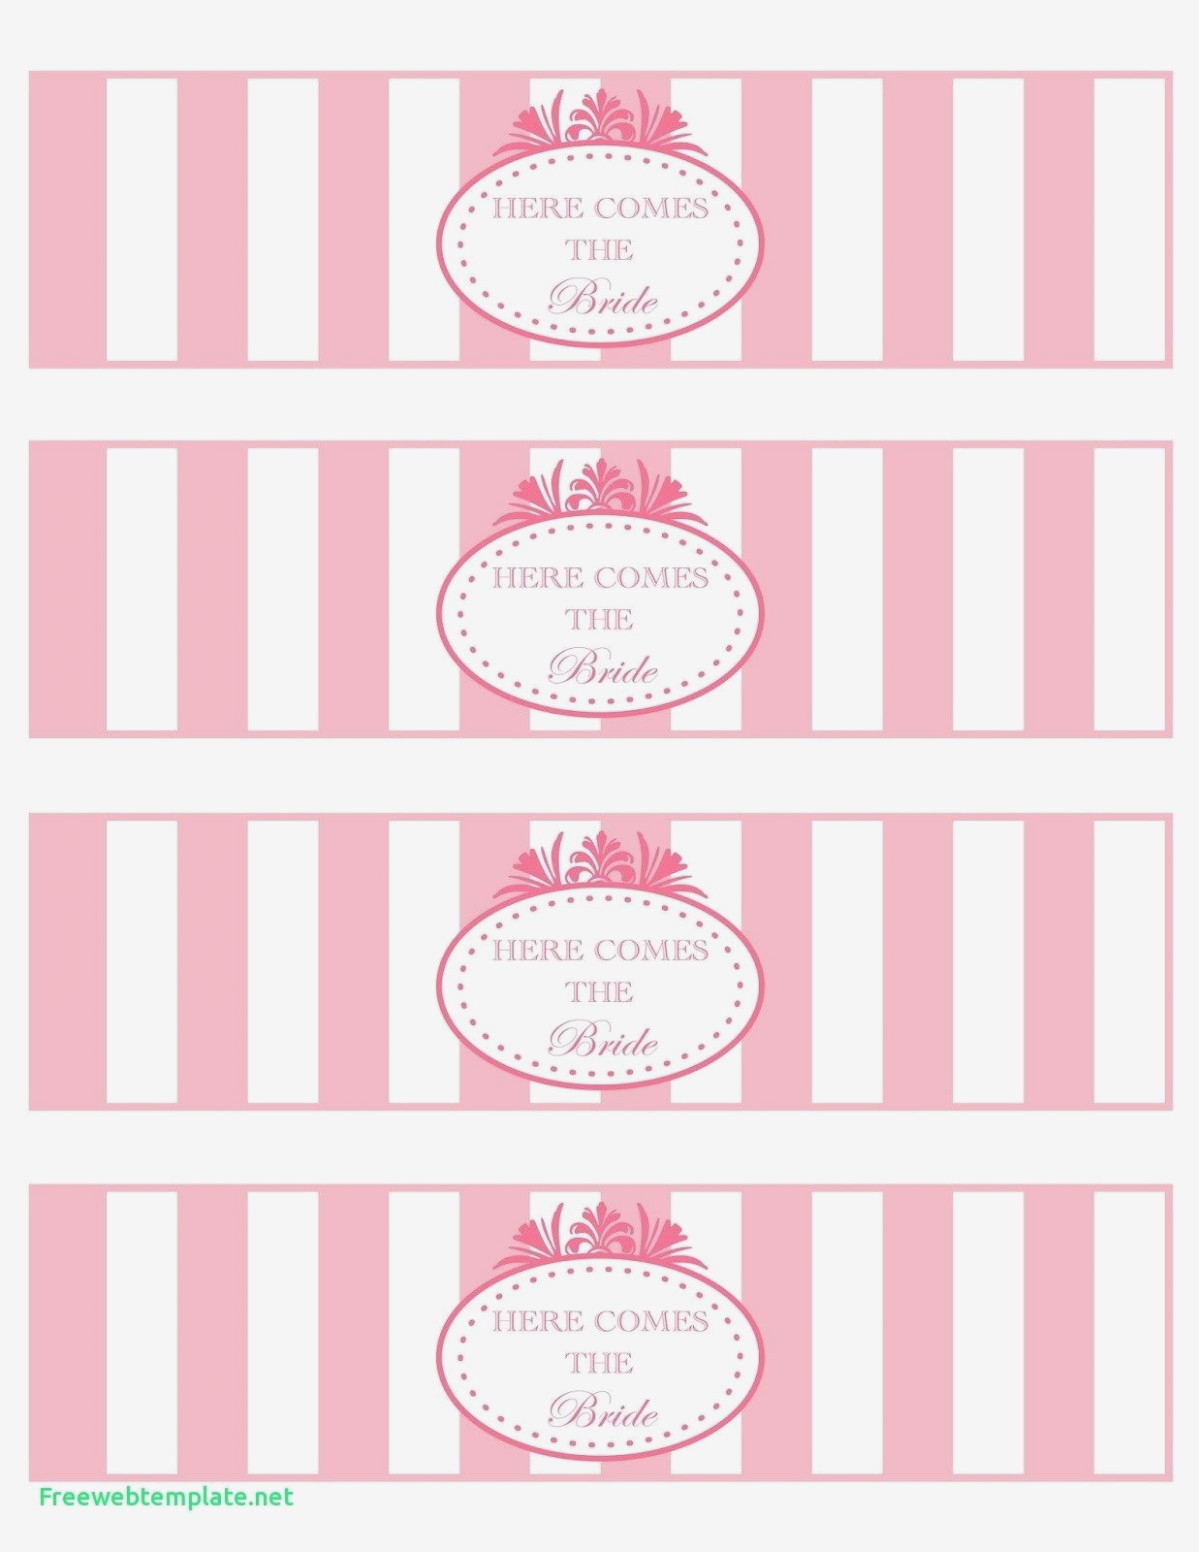 Free Printable Water Bottle Labels For Baby Shower – Hola.klonec - Free Printable Water Bottle Labels For Baby Shower